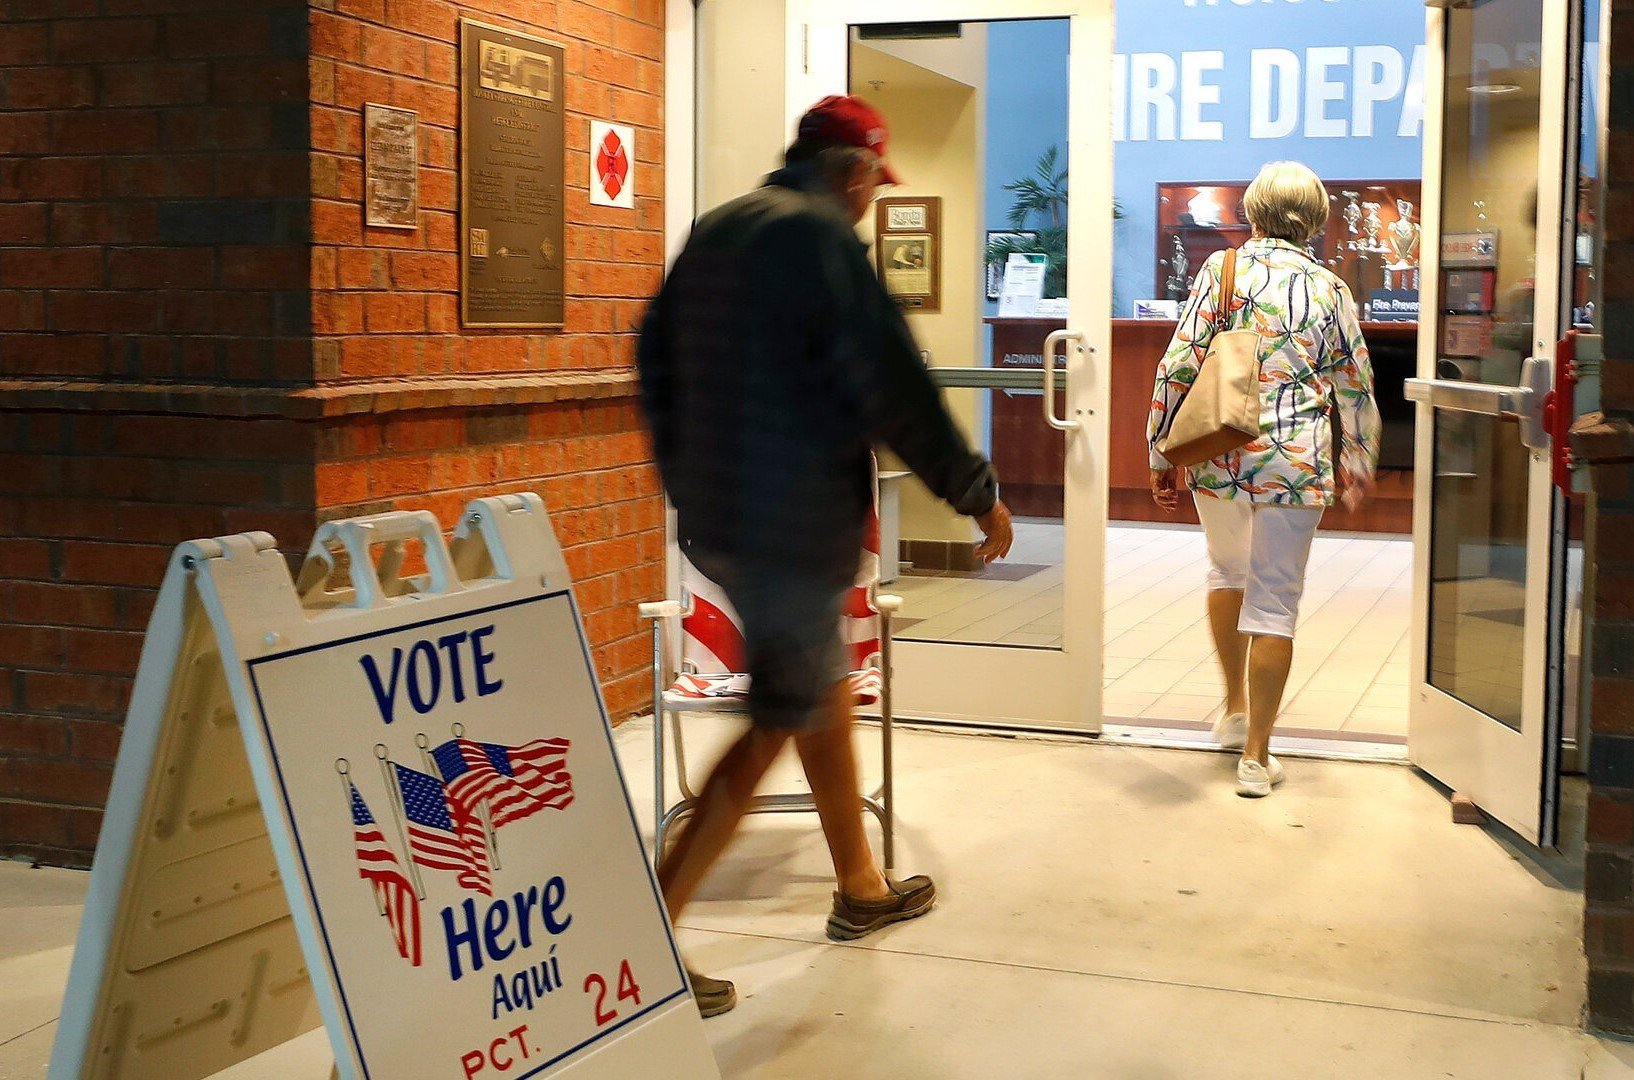 Democratic Turnout is Exceeding Republican turnout